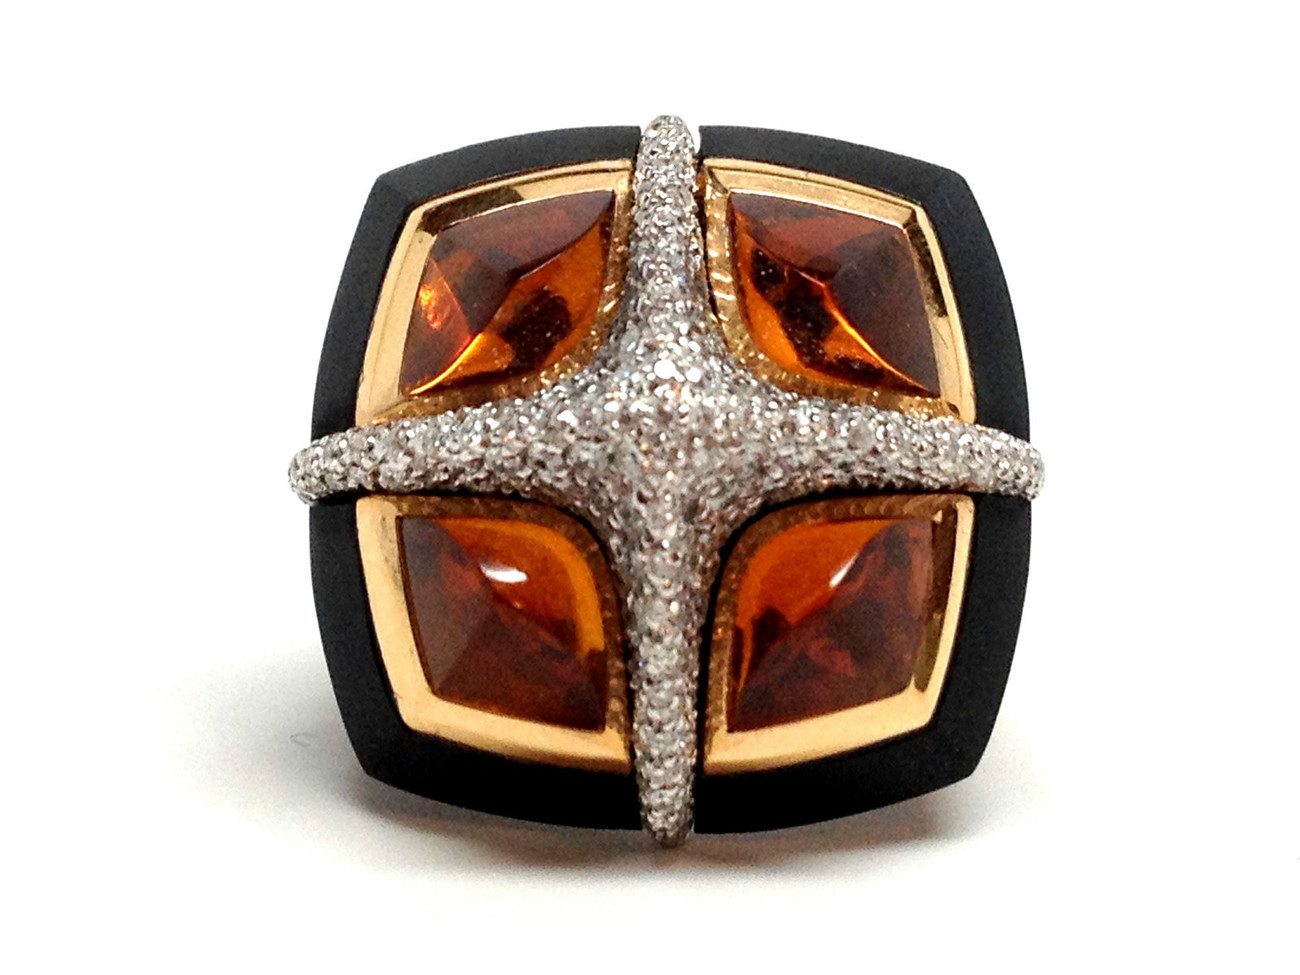 VALENTE 18K Gold Black Jet Citrine & Diamond Ring Sz 6 - 7 NEW Retail $14,240